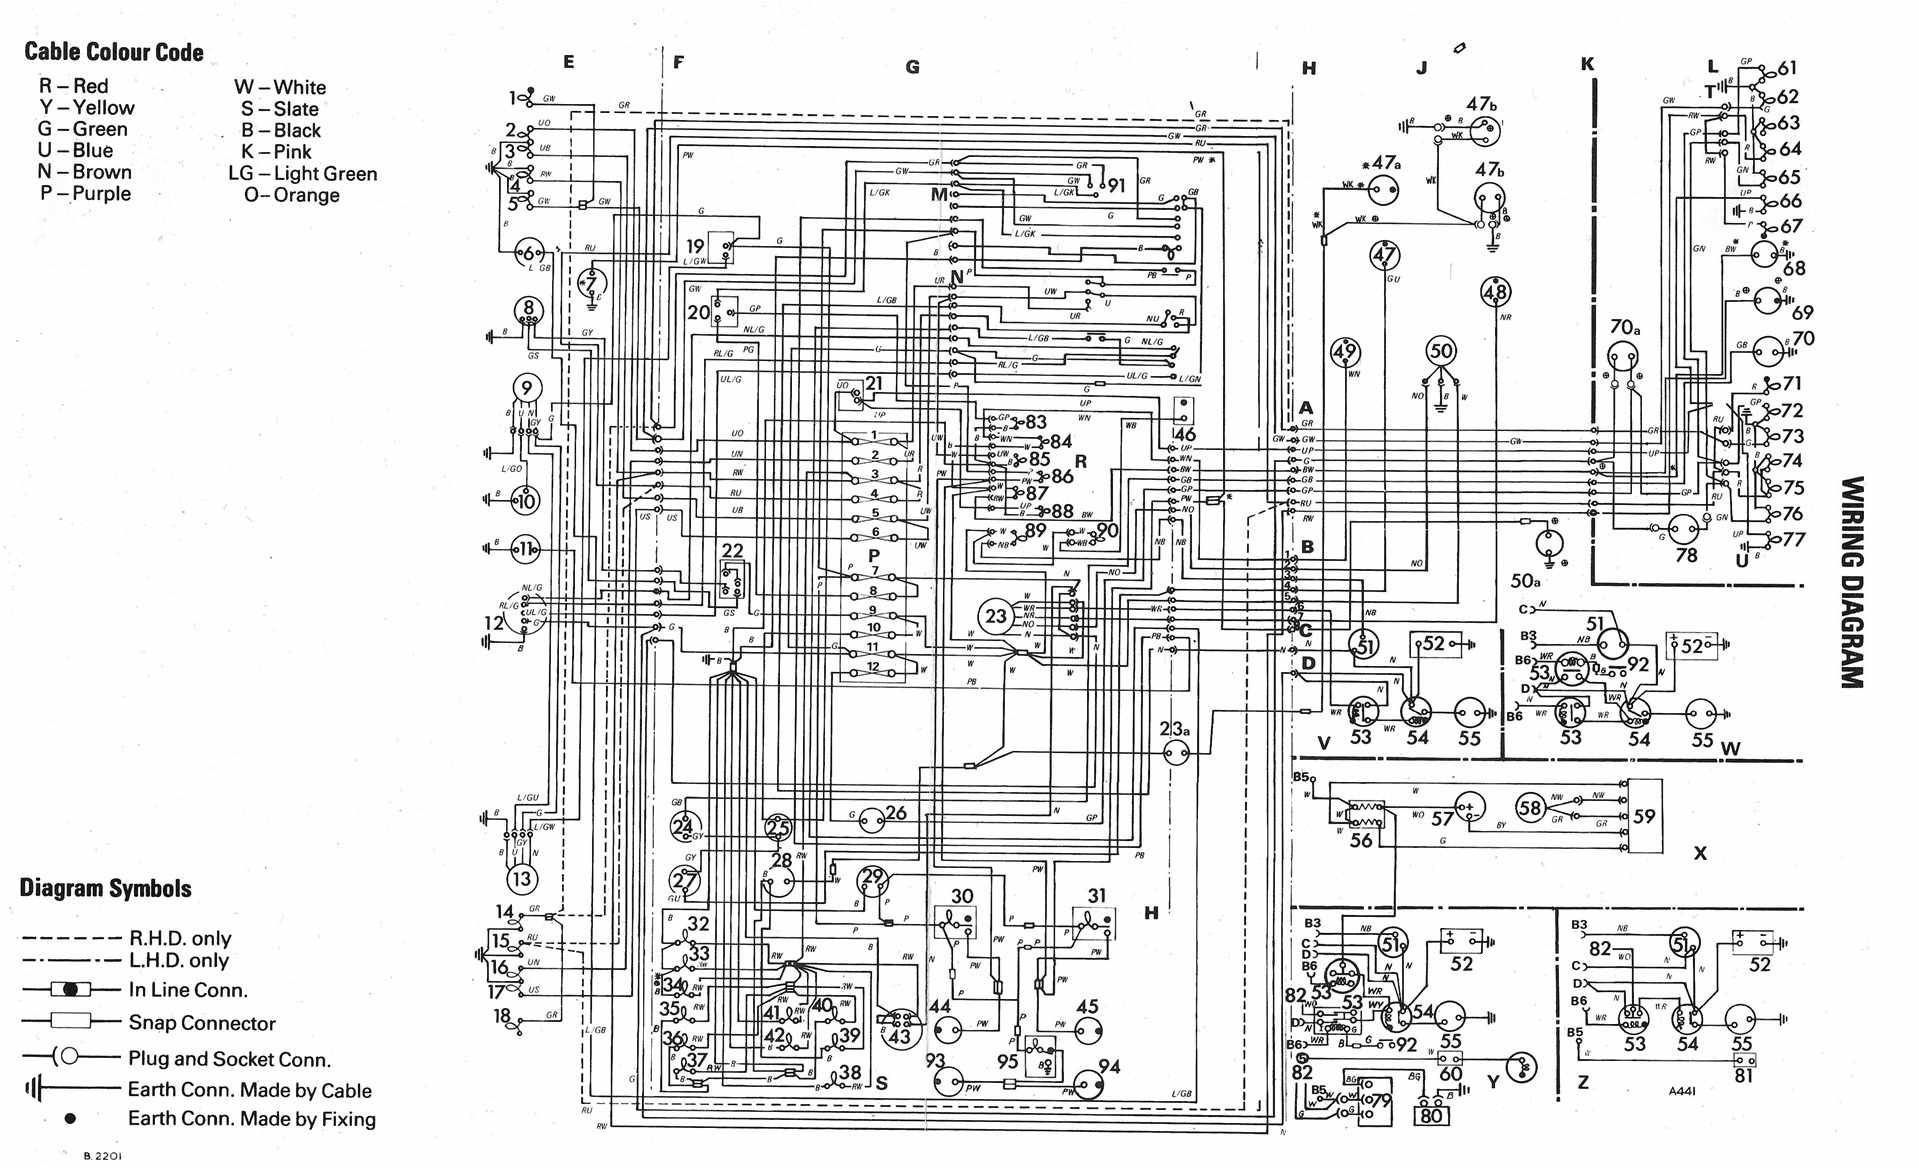 Unique Vw Golf Mk5 Headlight Wiring Diagram Diagram Diagramsample Diagramtemplate Wiringdiagram Diagramchart Worksheet Workshe Carros Audi Audi Diagrama